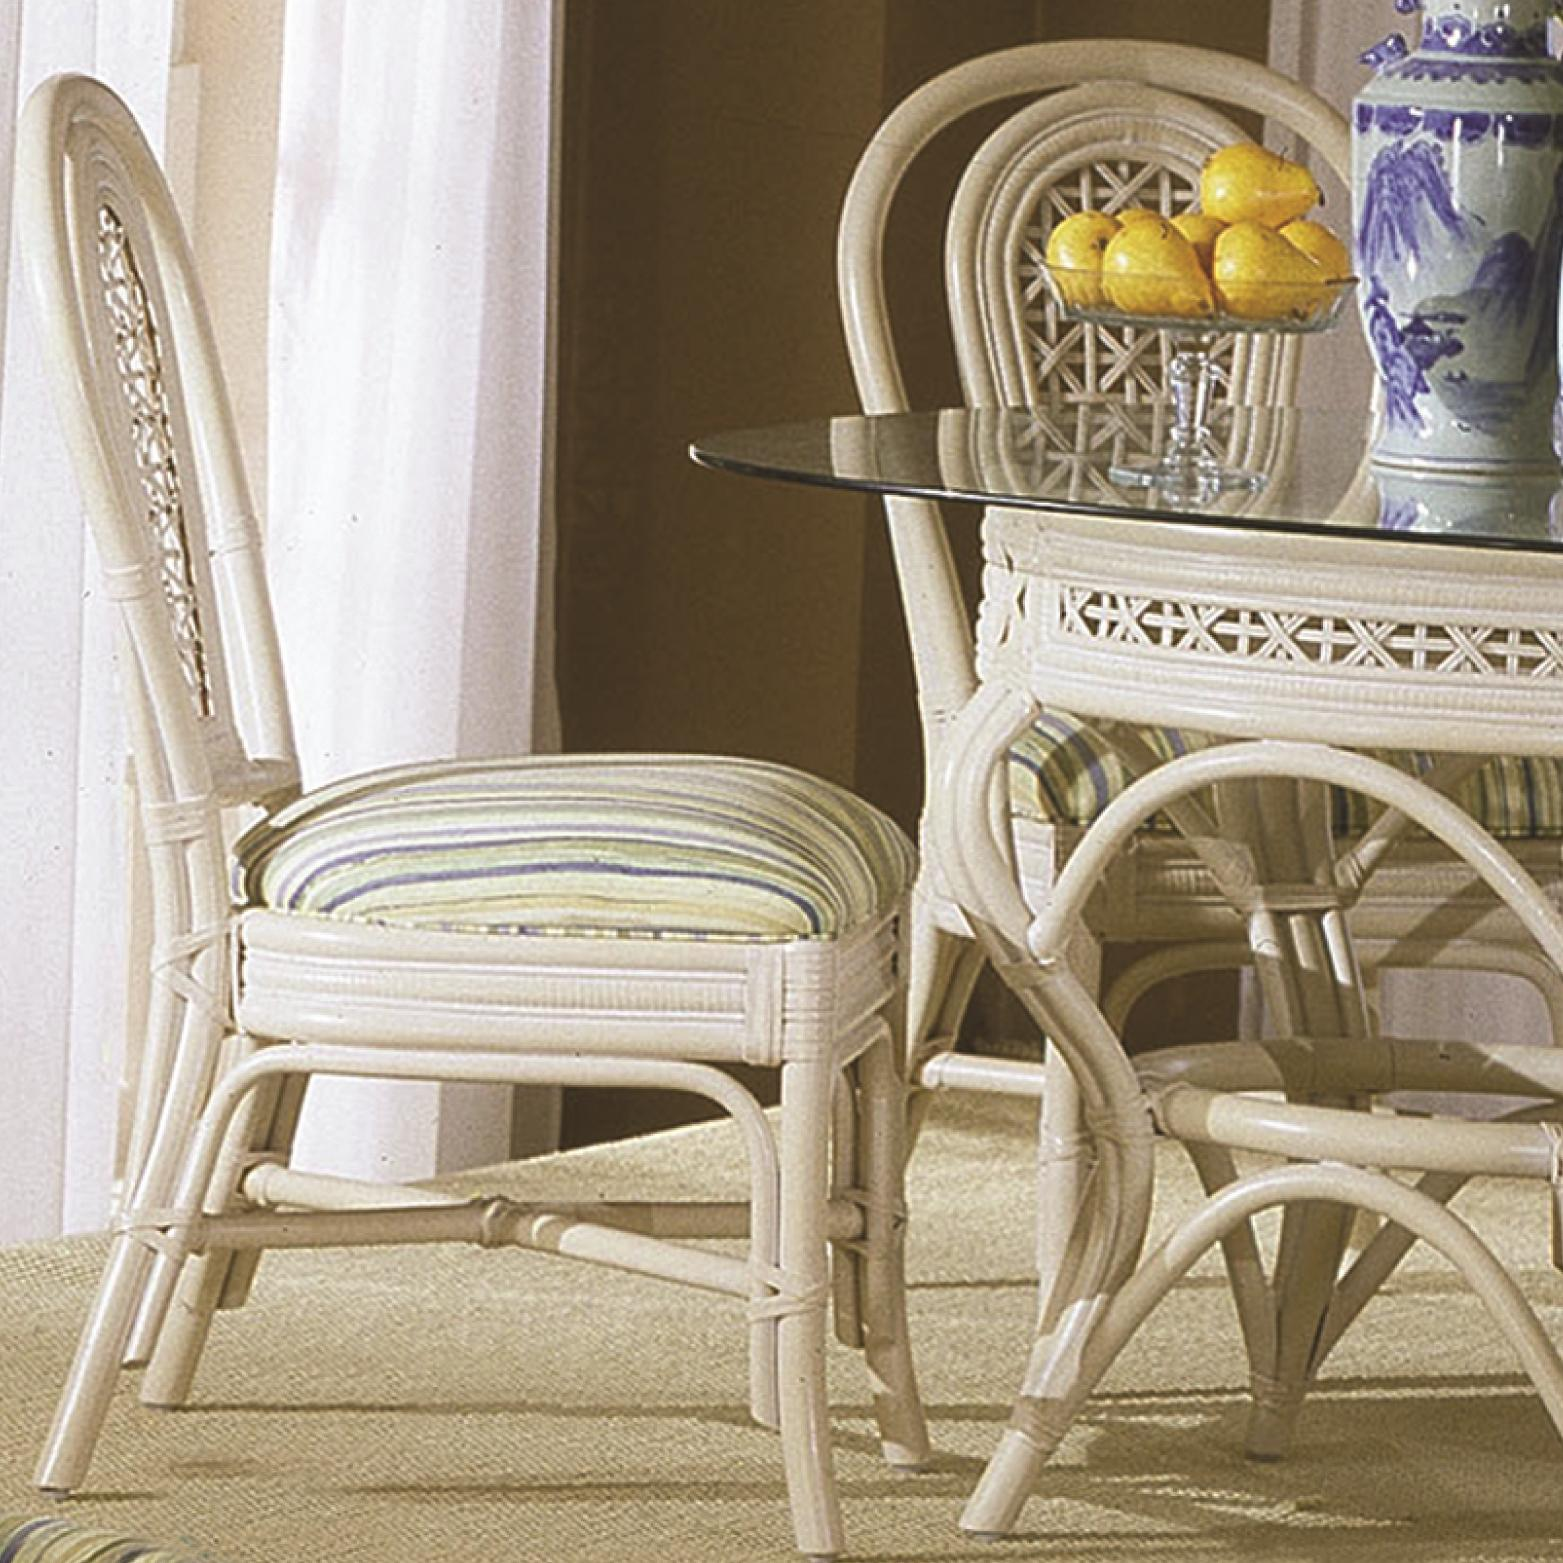 341 Collection Wicker Rattan Dining Side Chair by Capris Furniture at Esprit Decor Home Furnishings